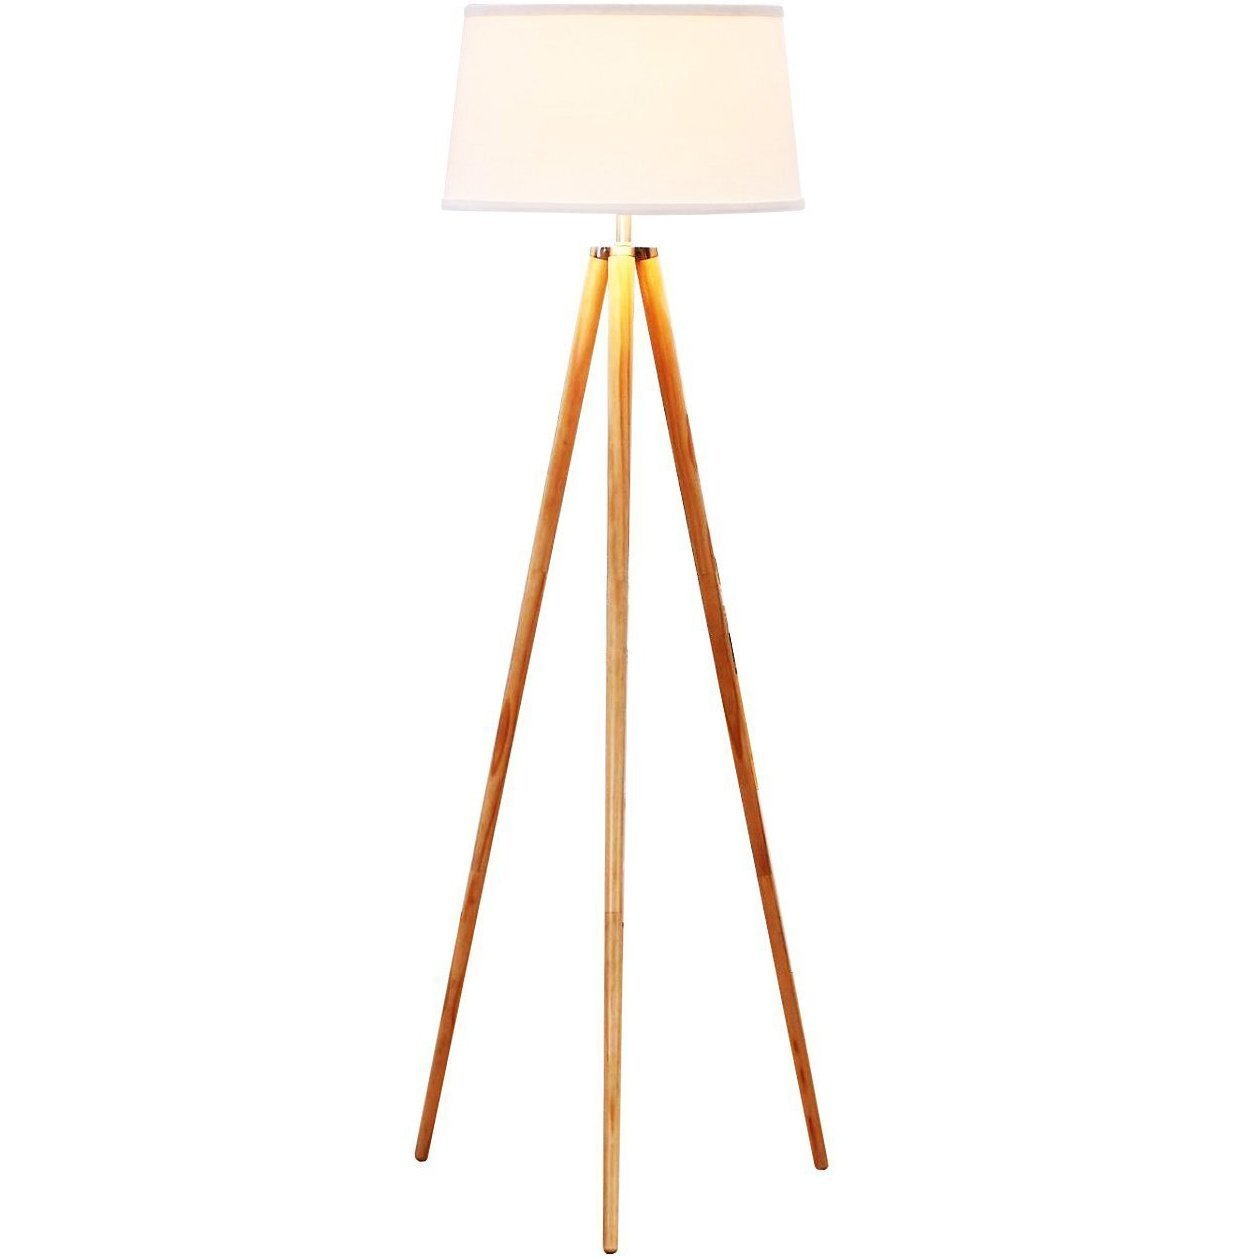 Amazon white floor lamps lamps shades tools - Brightech Emma Tripod Floor Lamp Classic Design For Contemporary Or Traditional Living Rooms Soft Ambient Lighting White Shade Amazon Com